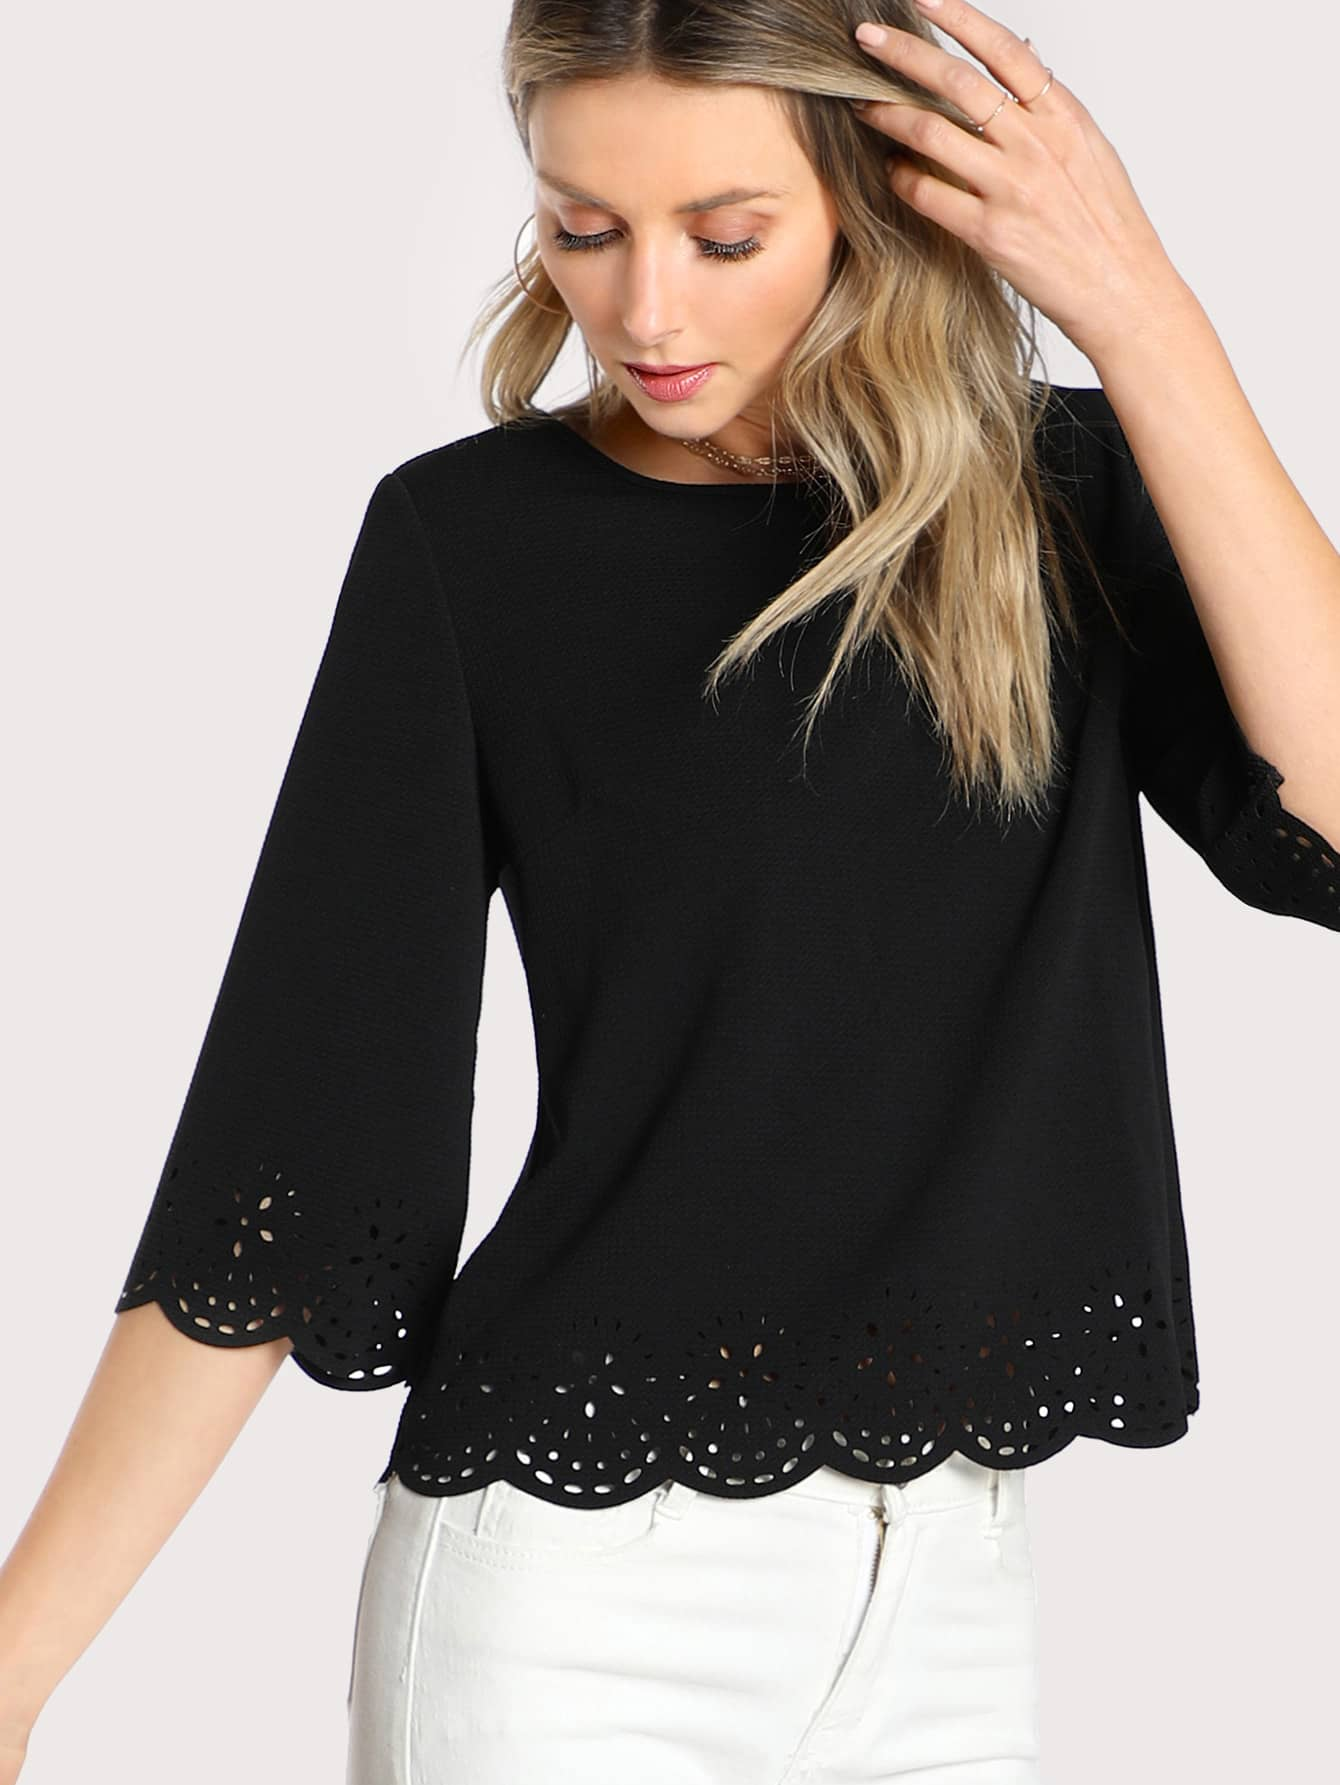 Scallop Laser Cut Textured Blouse scallop laser cut out textured tank top